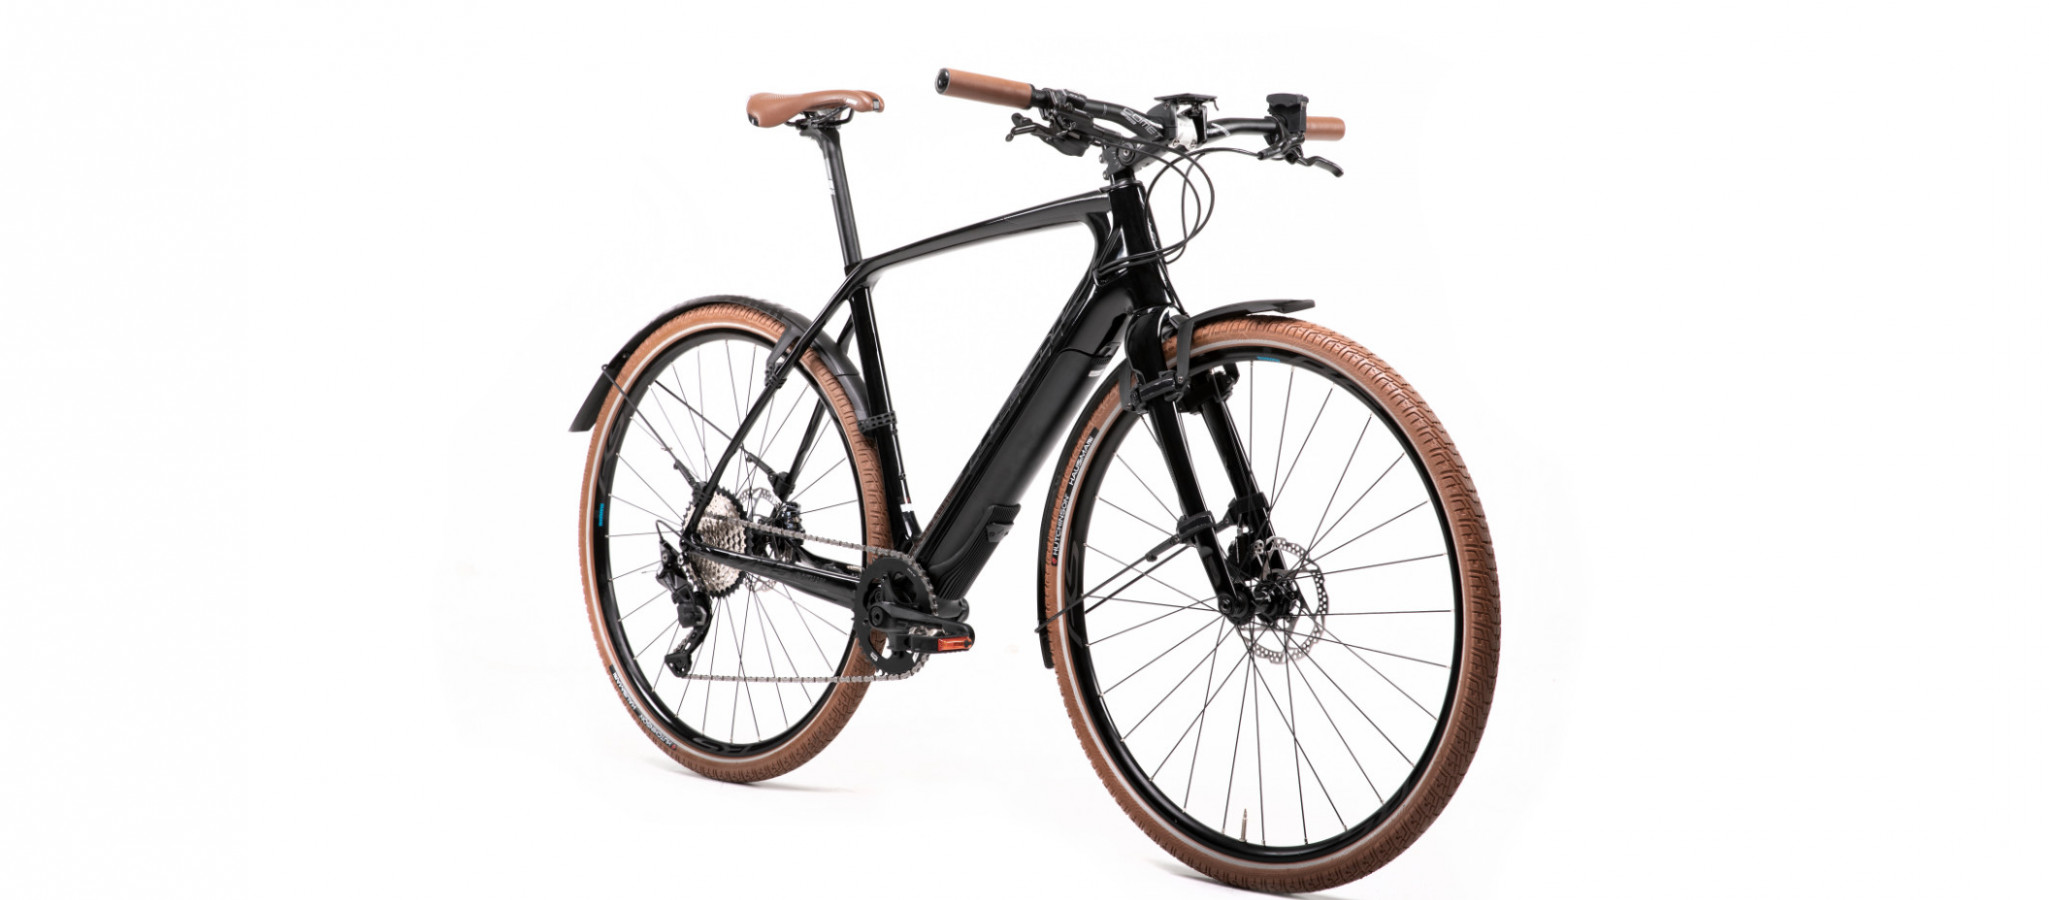 Look's new carbon fiber city electric bicycle weighs just 15 kg